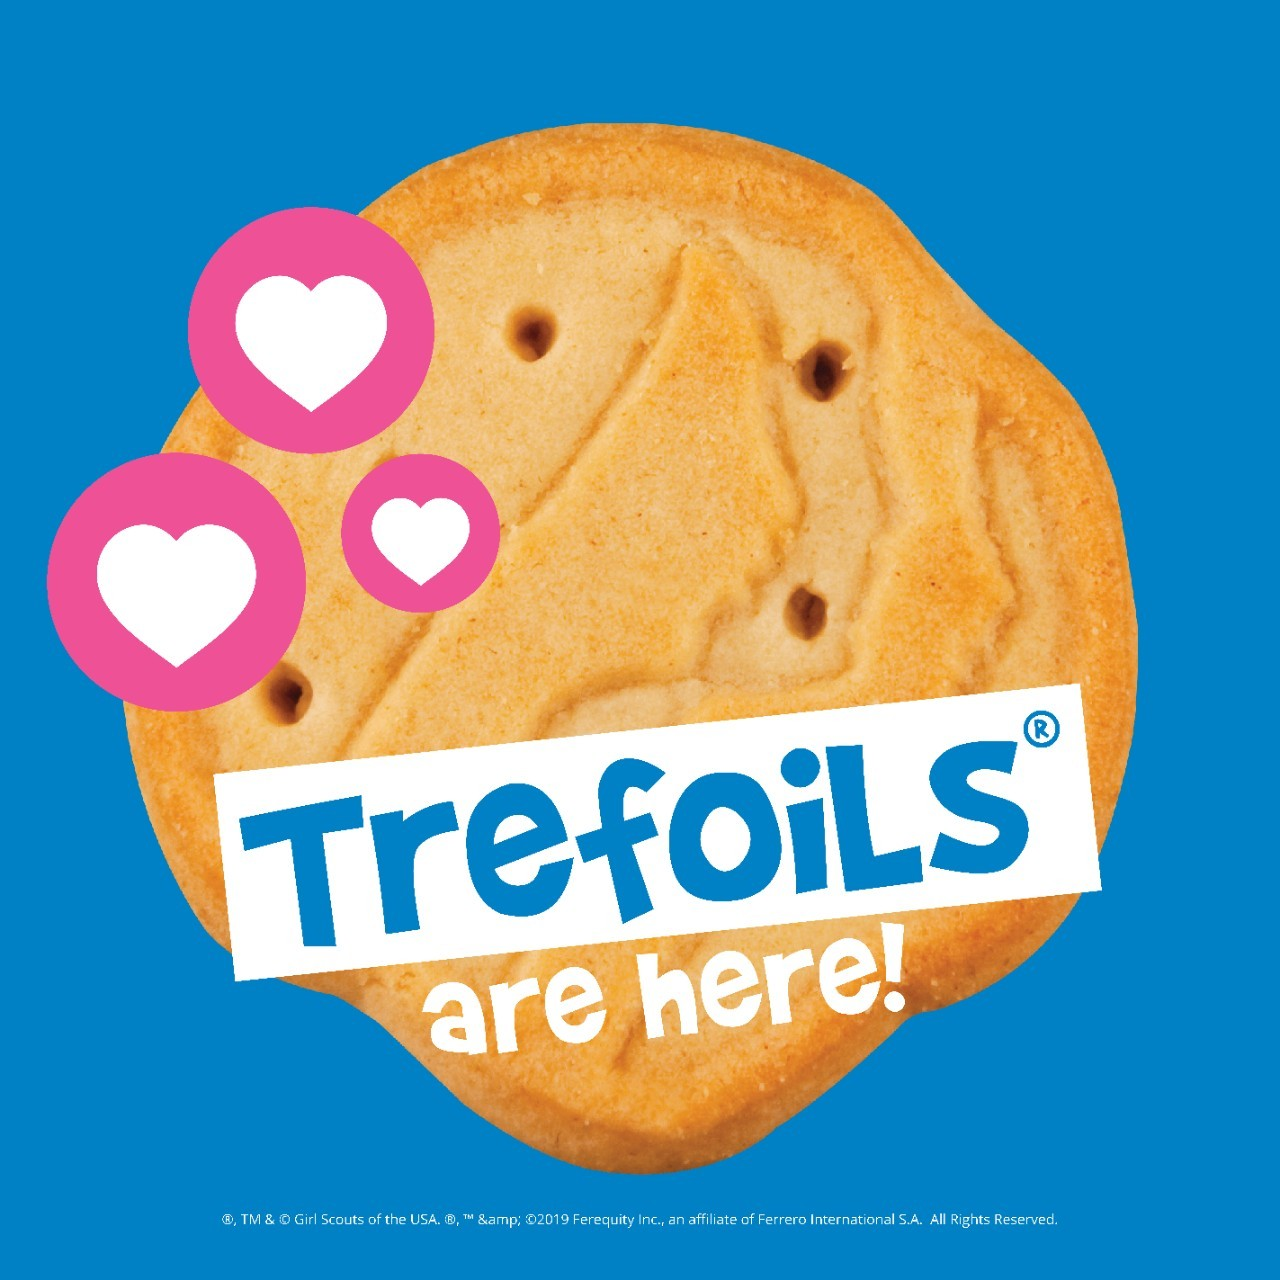 Trefoils are here